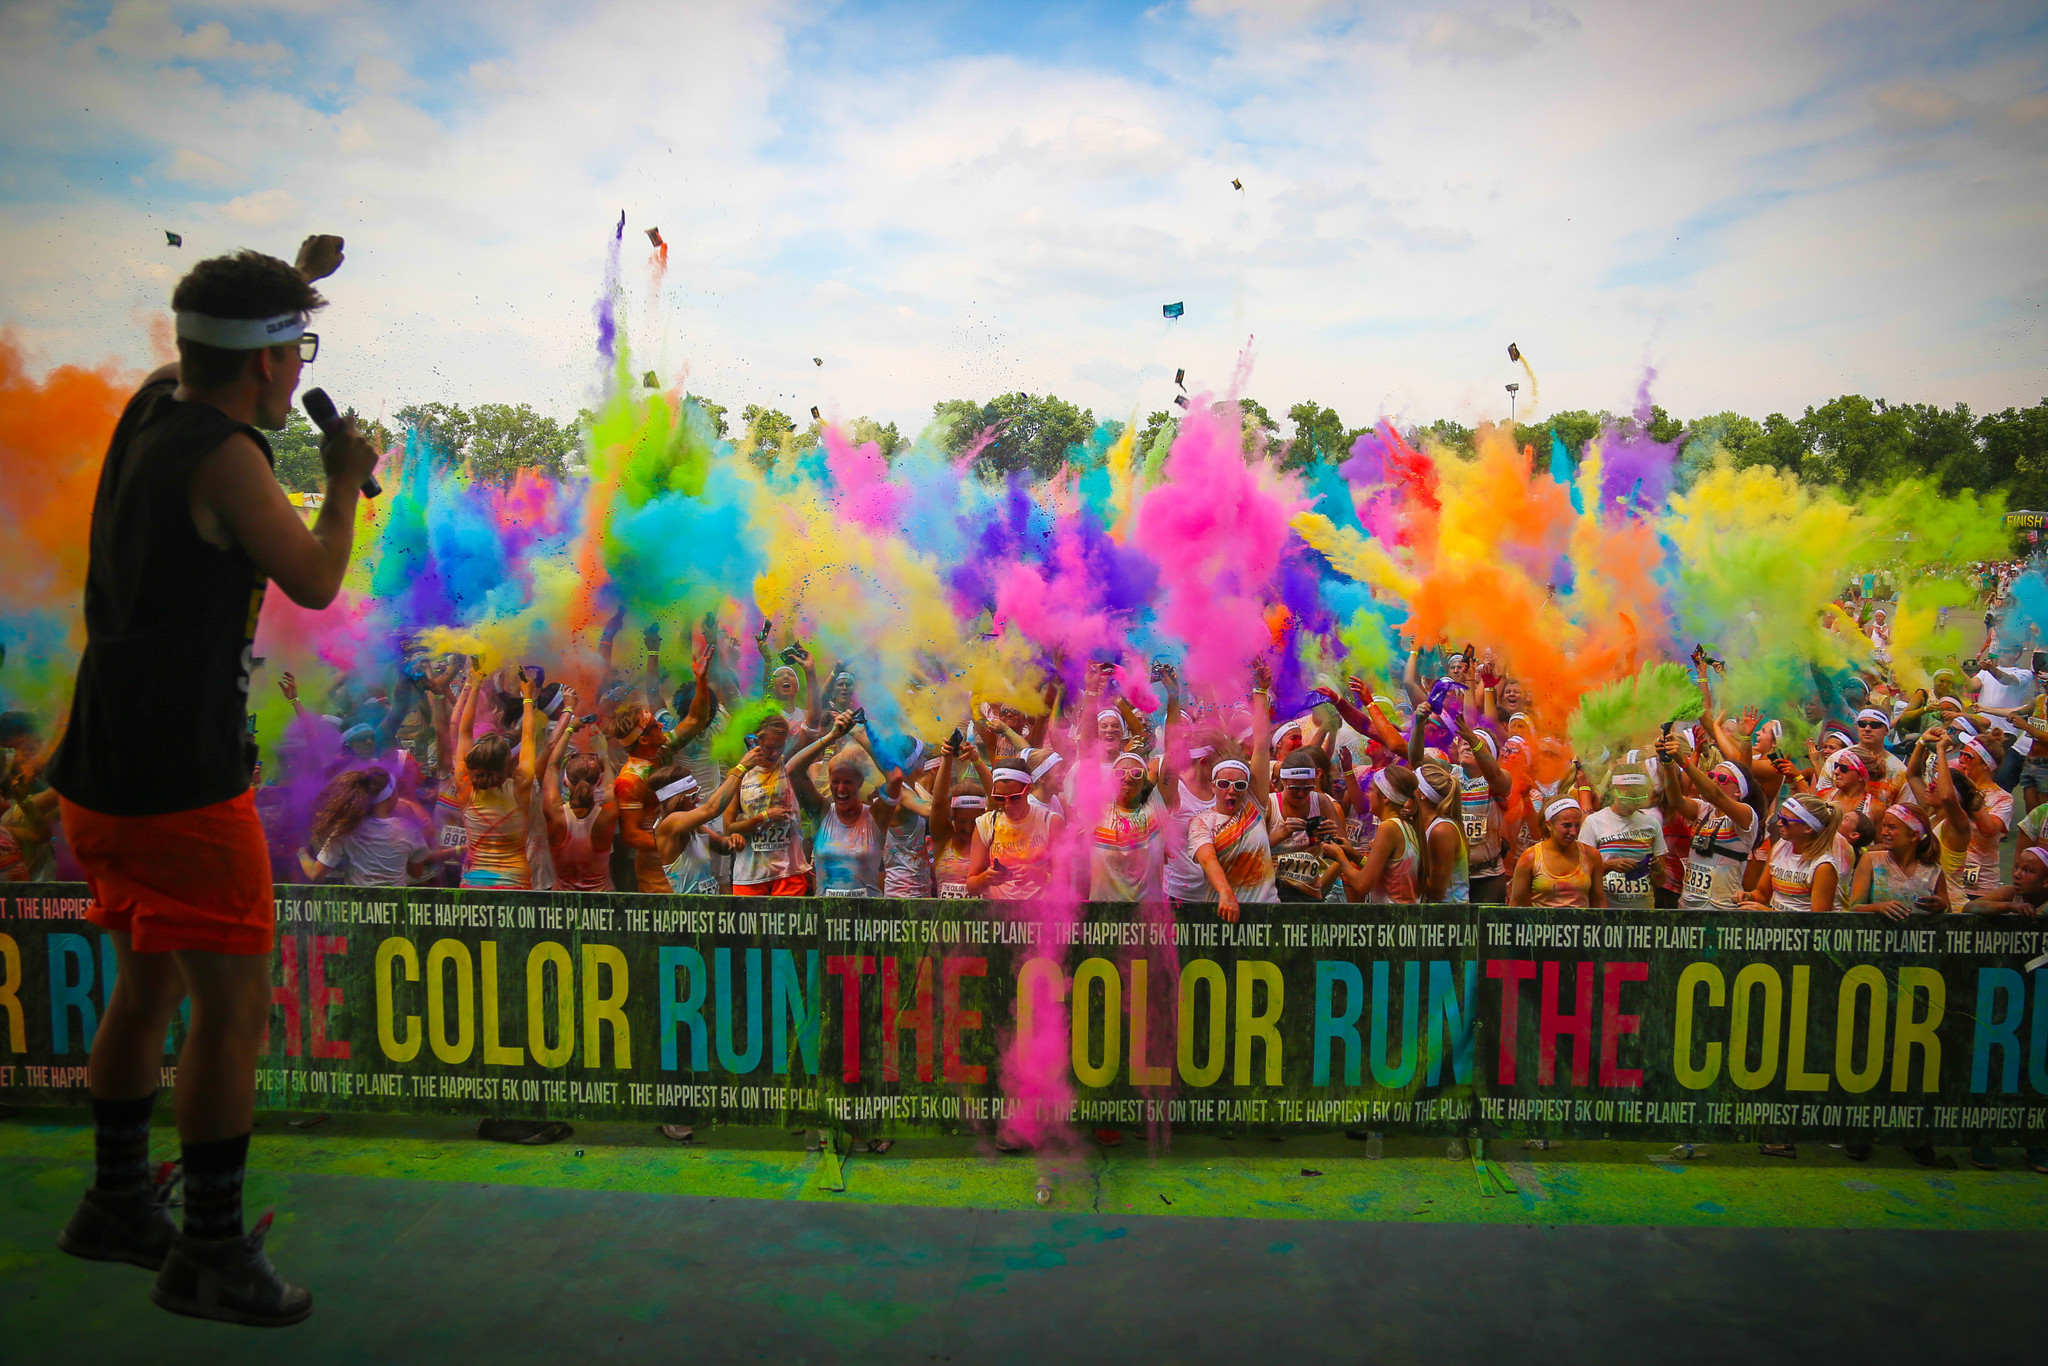 Run through clouds of color, raise money for a worthy cause, and win a unicorn medal this Memorial Day Weekend! This Saturday, May 27, The Color Run Dream Tour presented by .